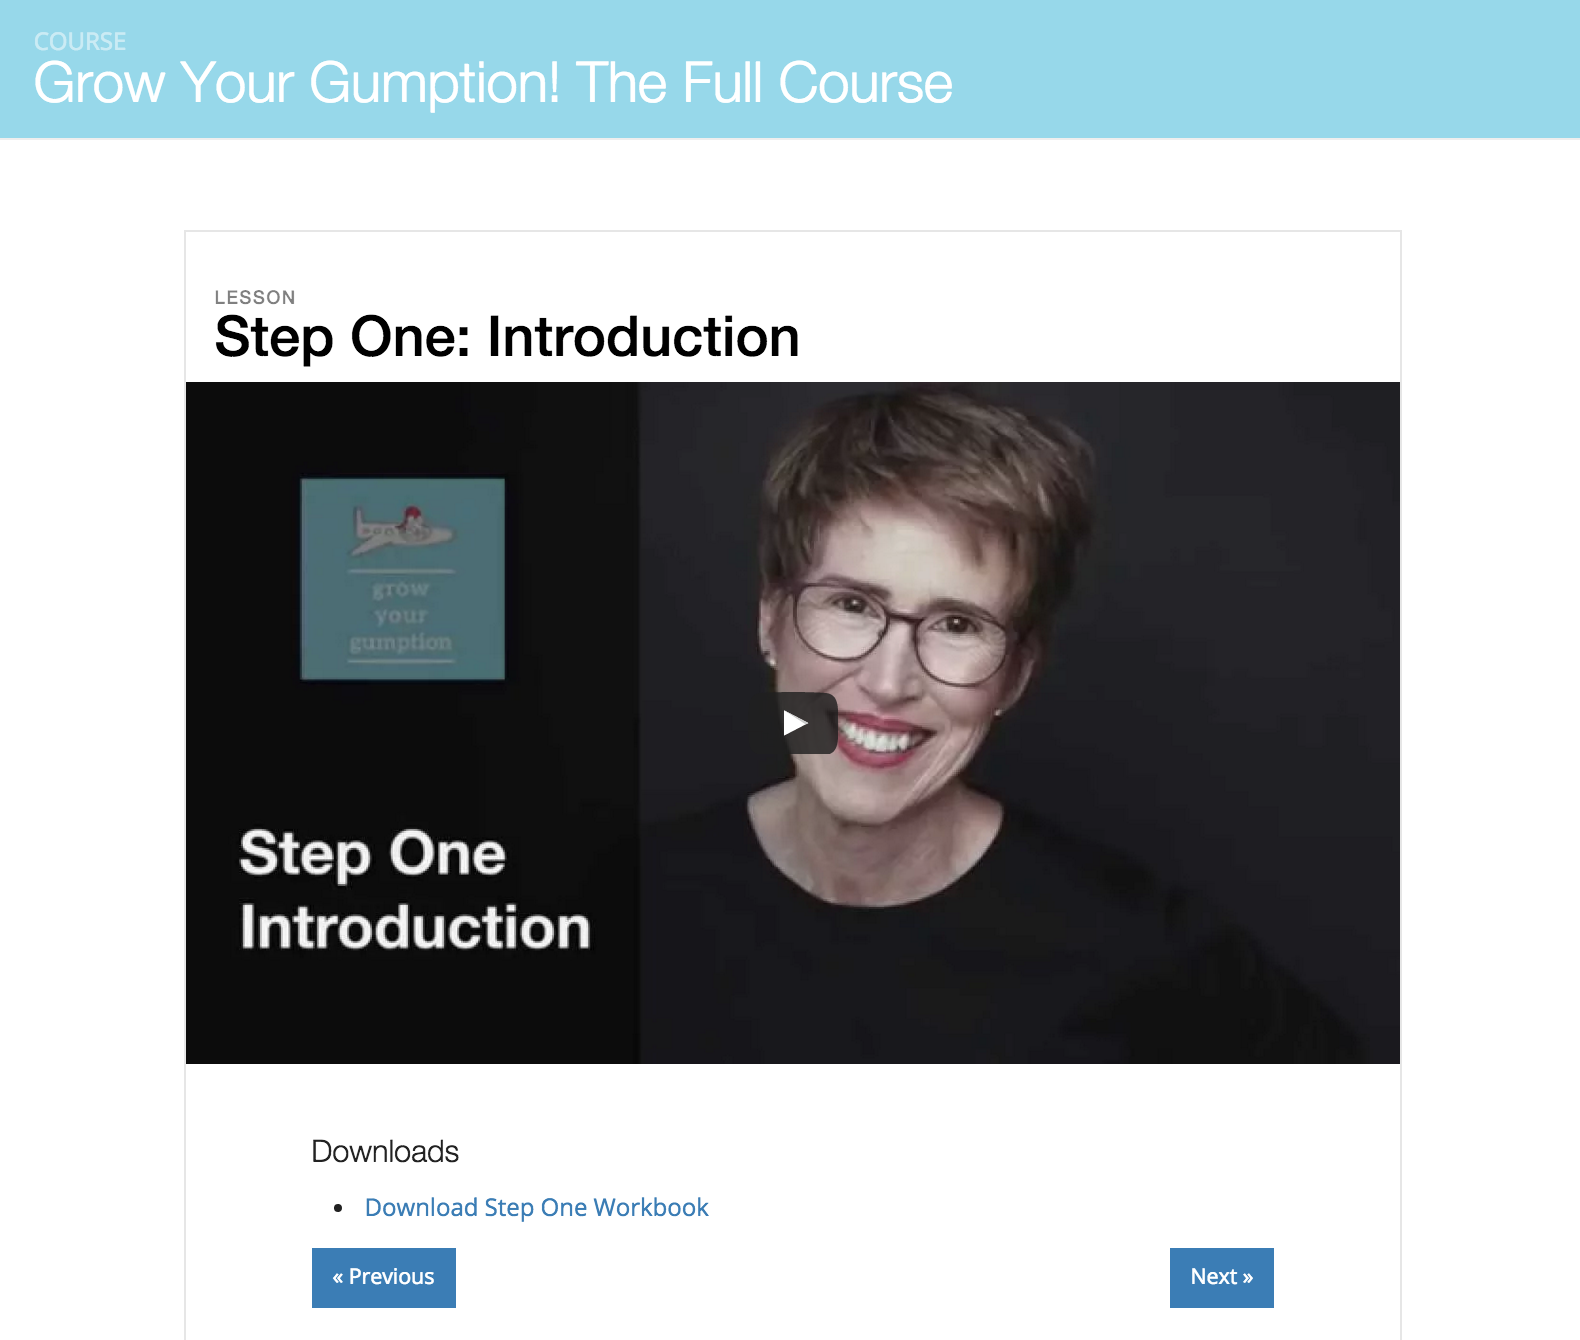 Grow Your Gumption